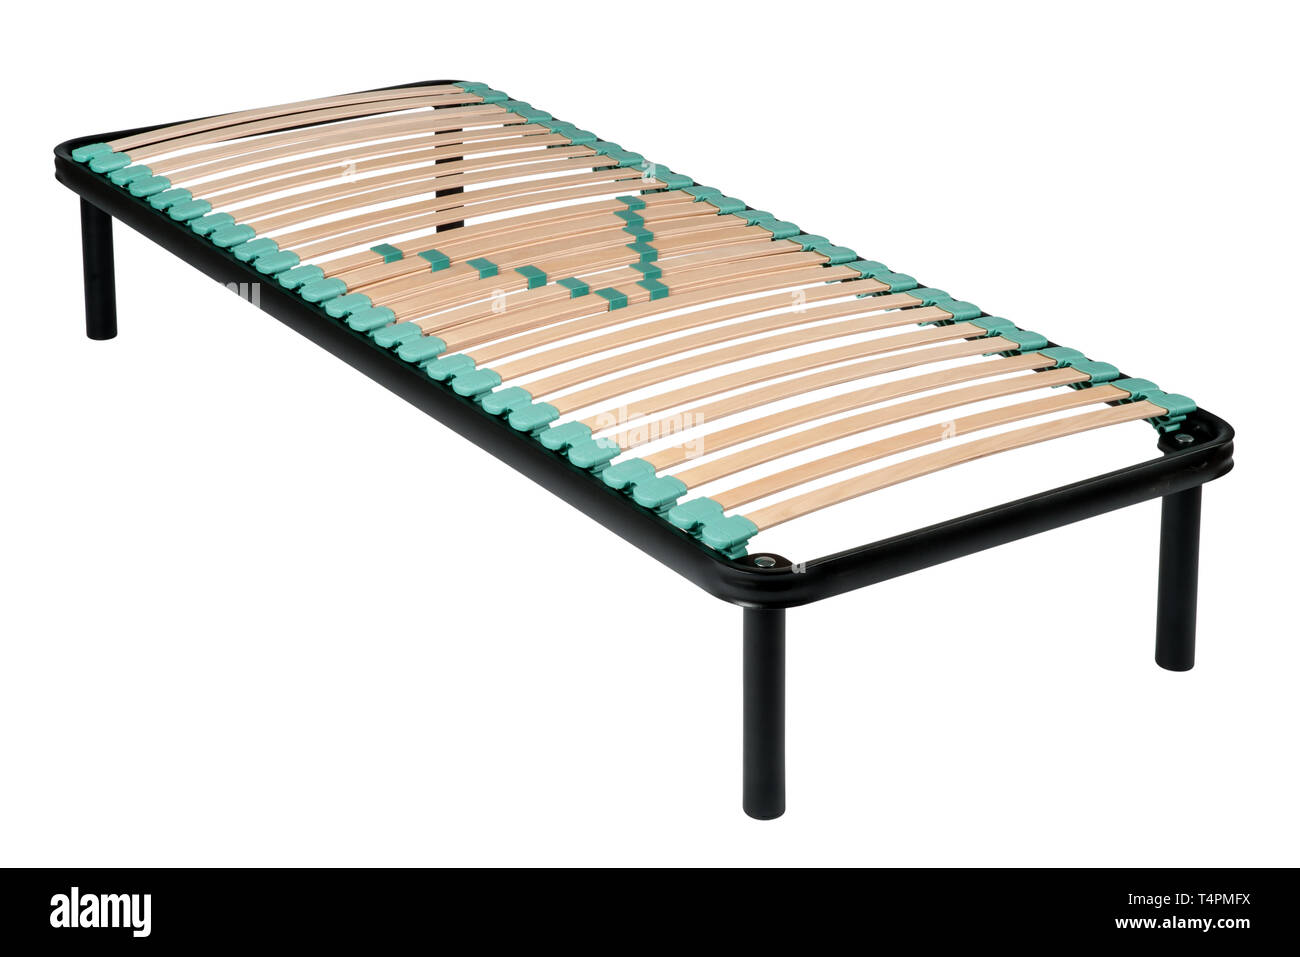 Single metal frame orthopaedic net bed with wooden slats and rubber shock absorbers isolated on white for maximum comfort and support - Stock Image